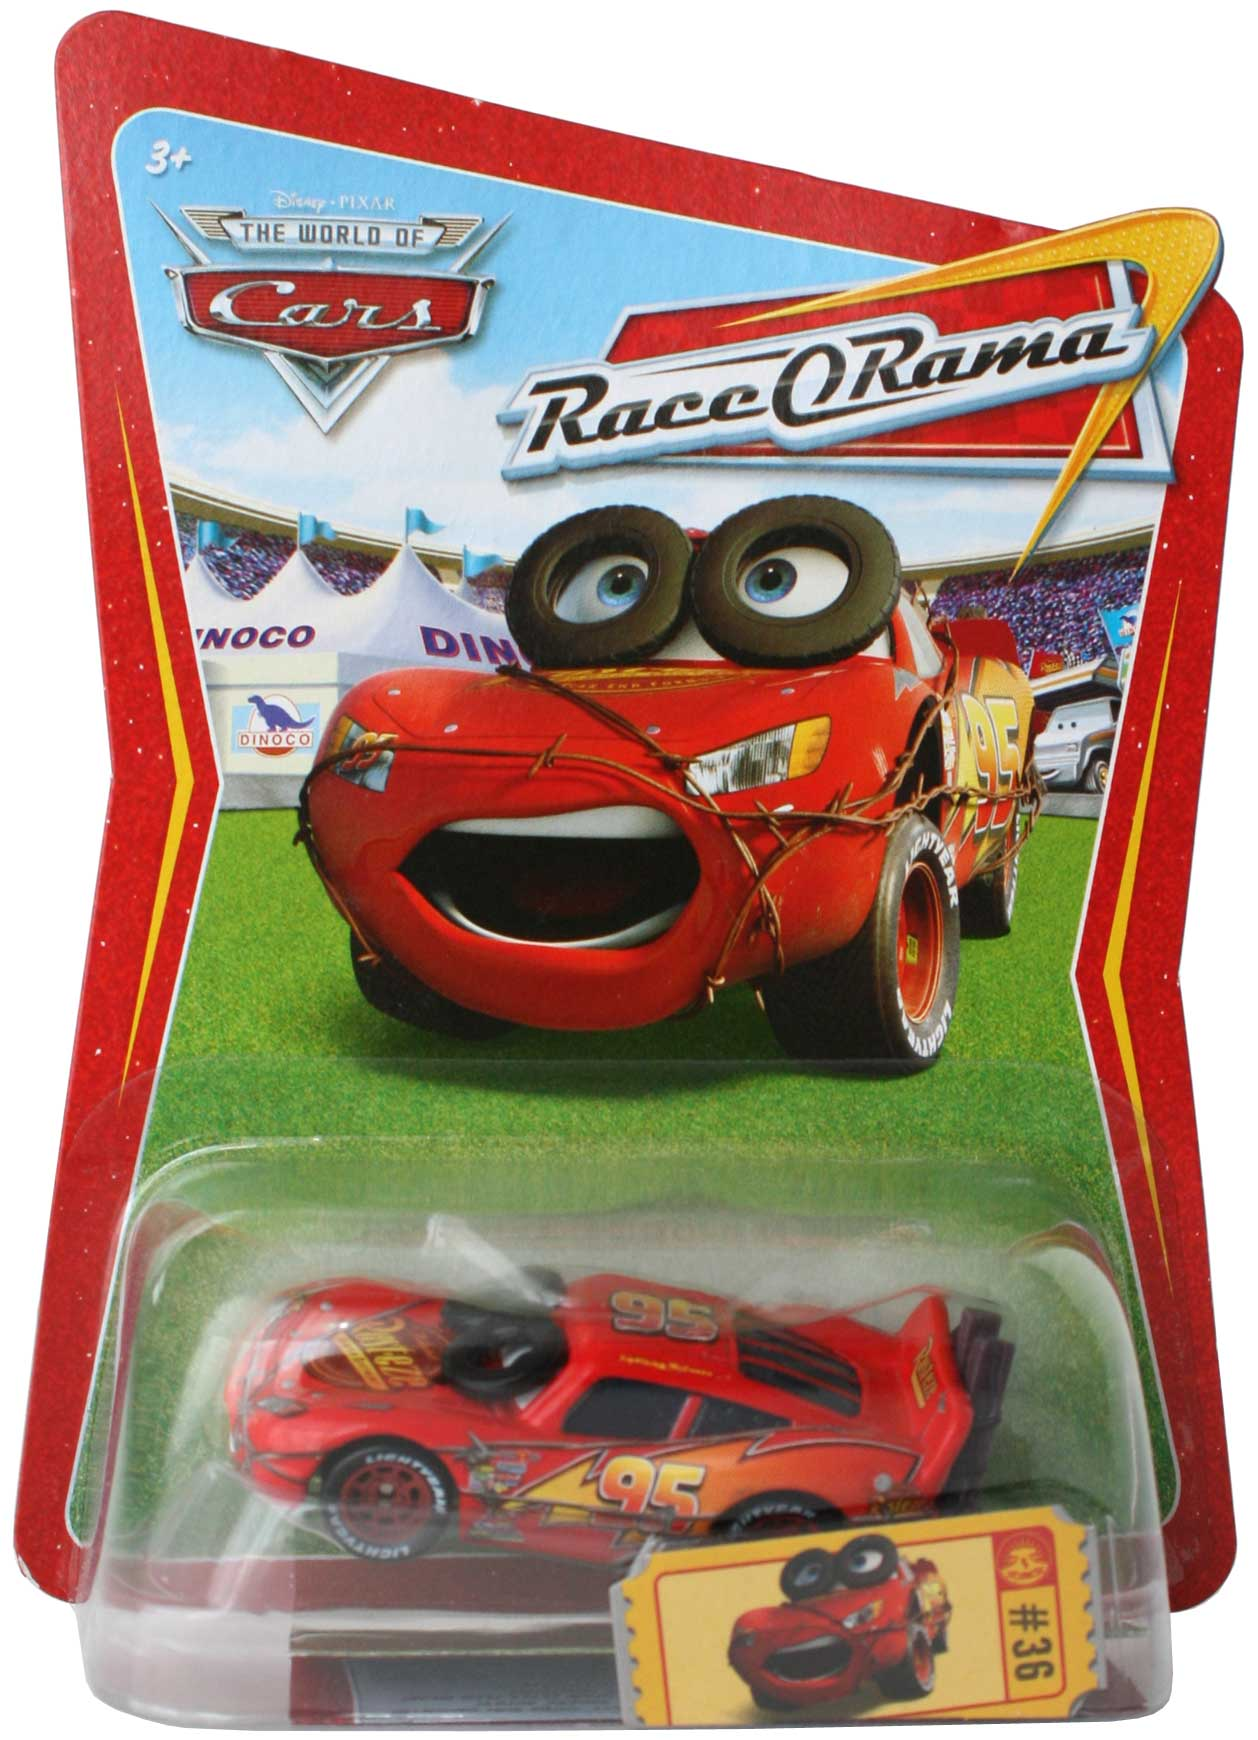 Collection Mattel : Race-O-Rama (2009)